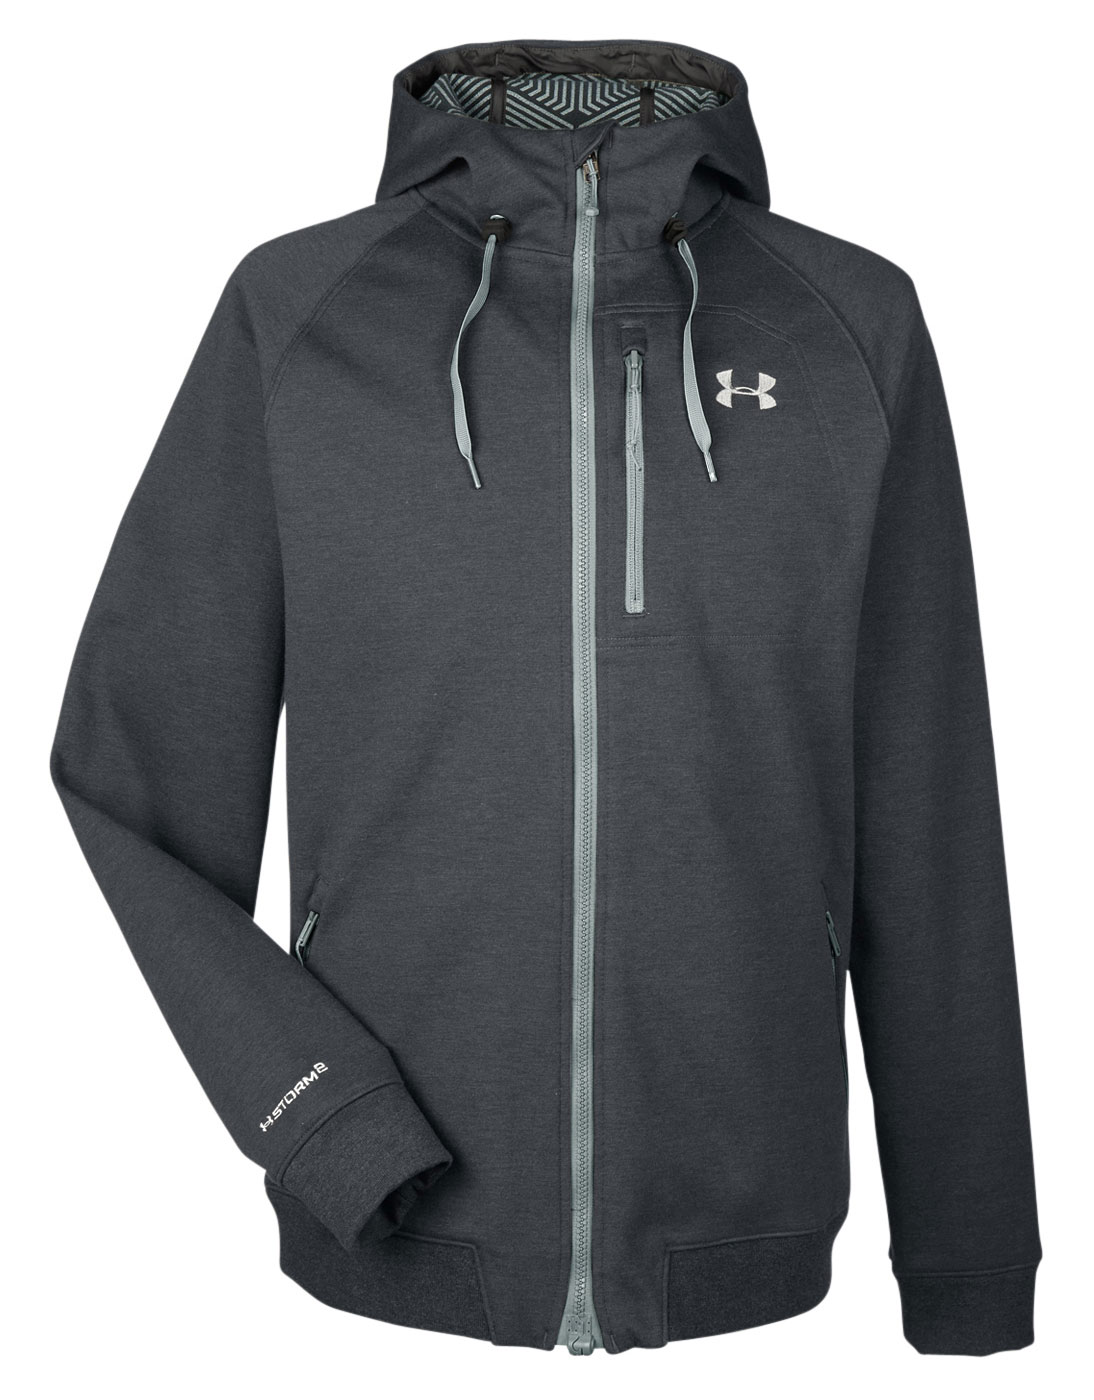 Mens Under Armour Coldgear Infrared Dobson Softshell Jacket